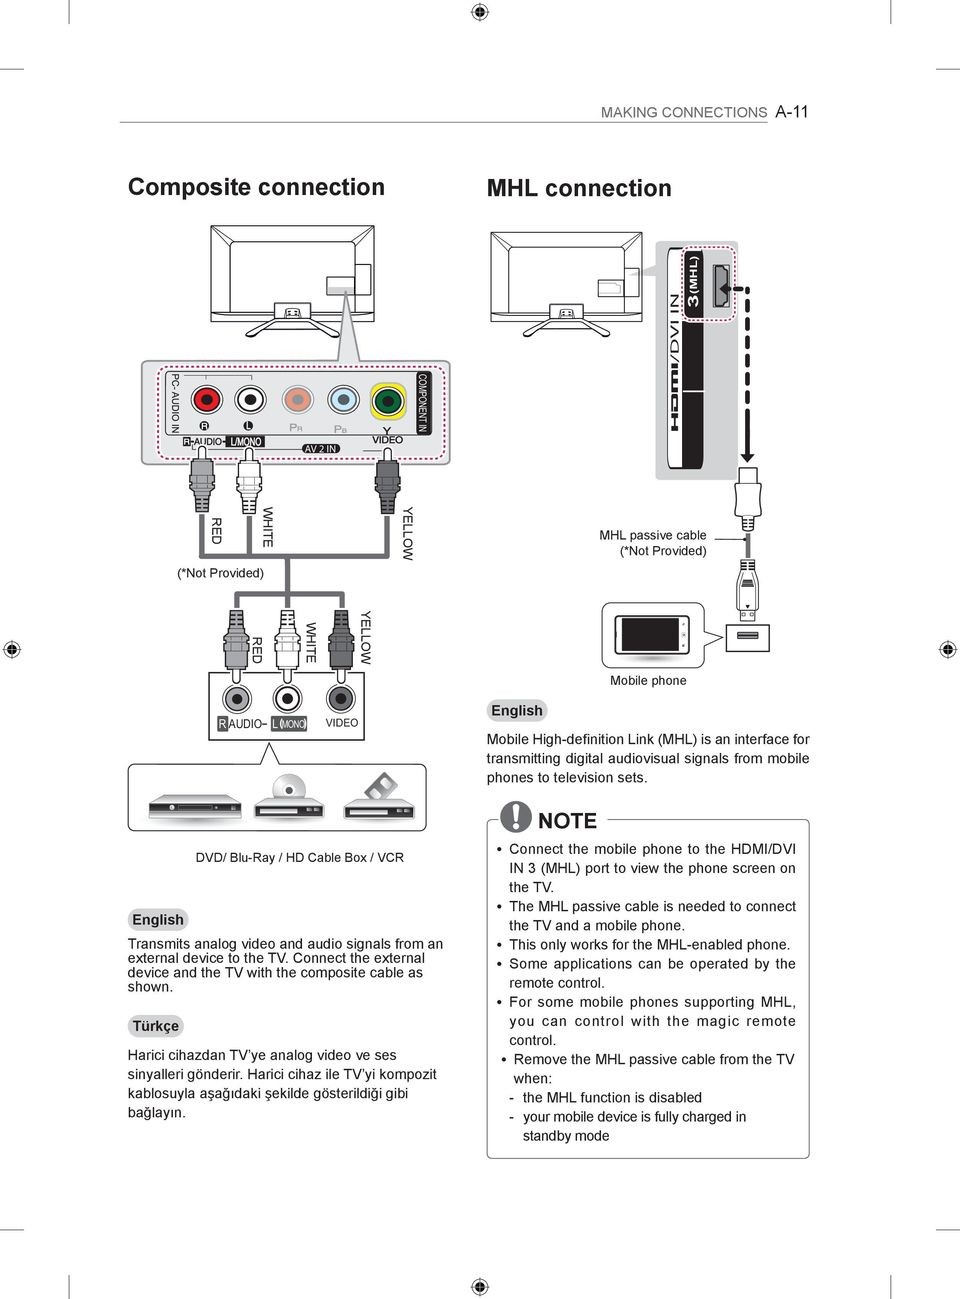 English DVD/ Blu-Ray / HD Cable Box / VCR Transmits analog video and audio signals from an external device to the TV. Connect the external device and the TV with the composite cable as shown.